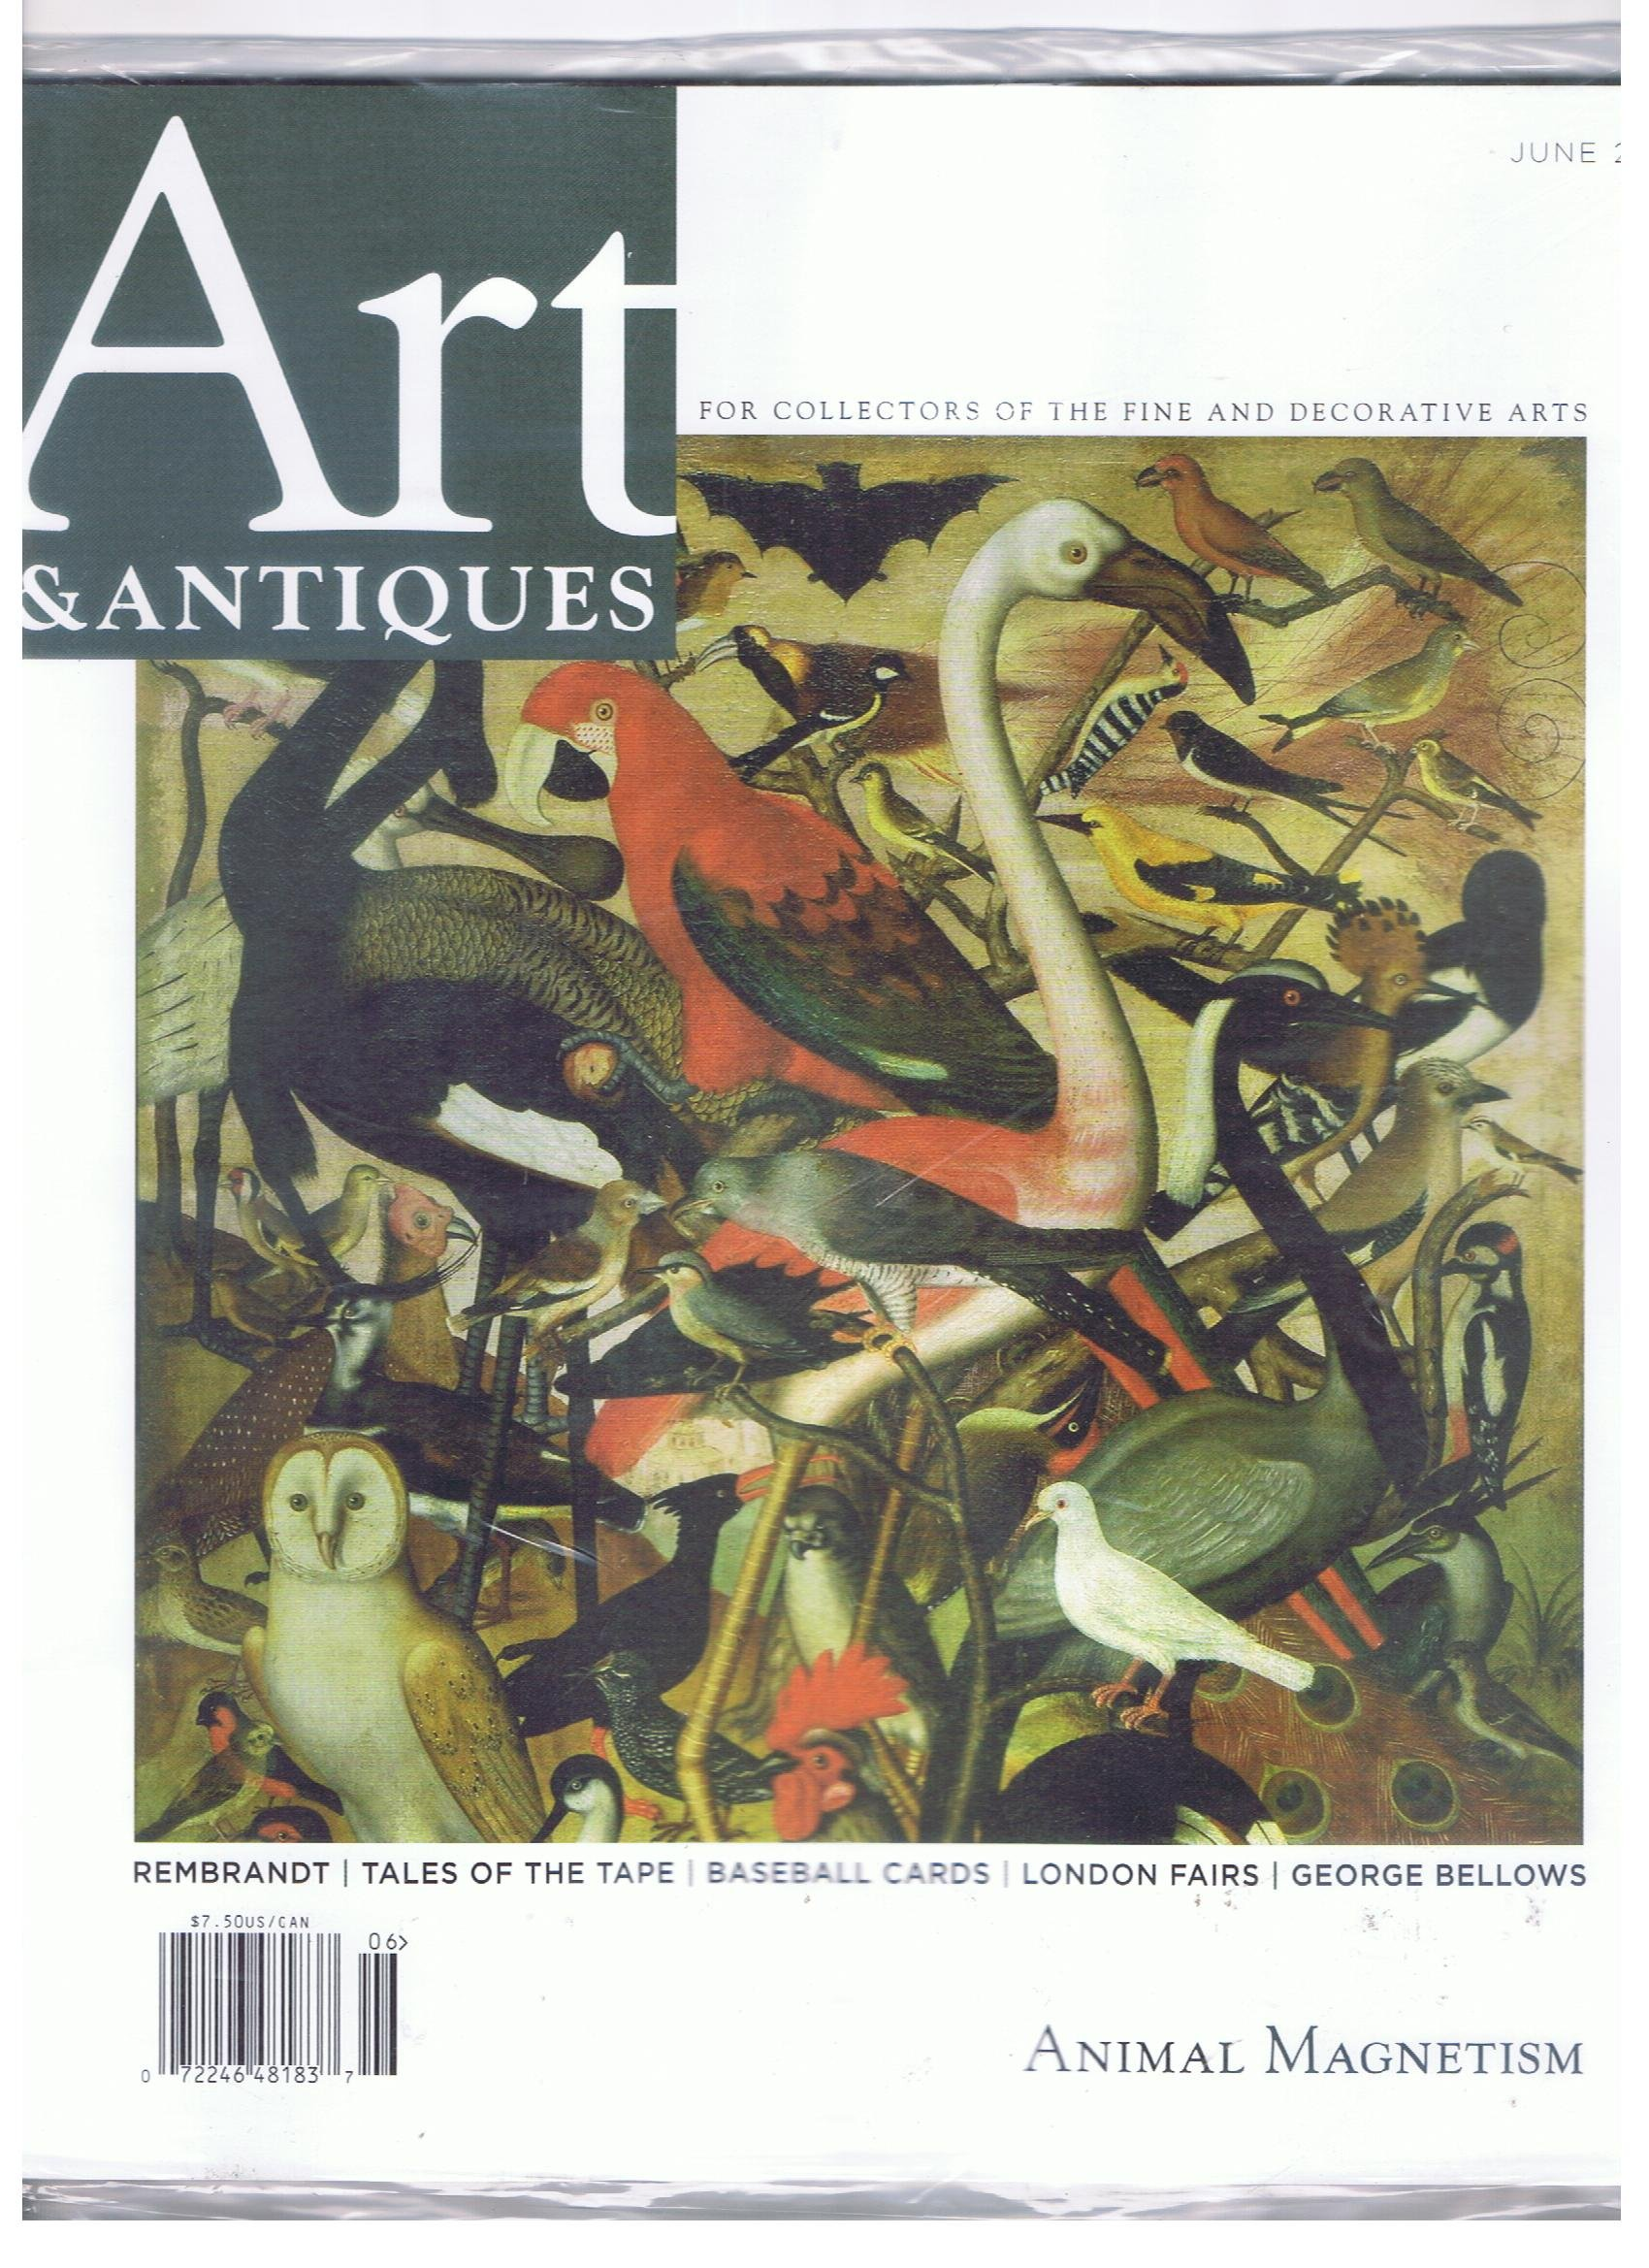 art antiques magazine june 2012 animal magnetism rembrandt tales of the tape baseball cardslondon fairsgeorge bellows